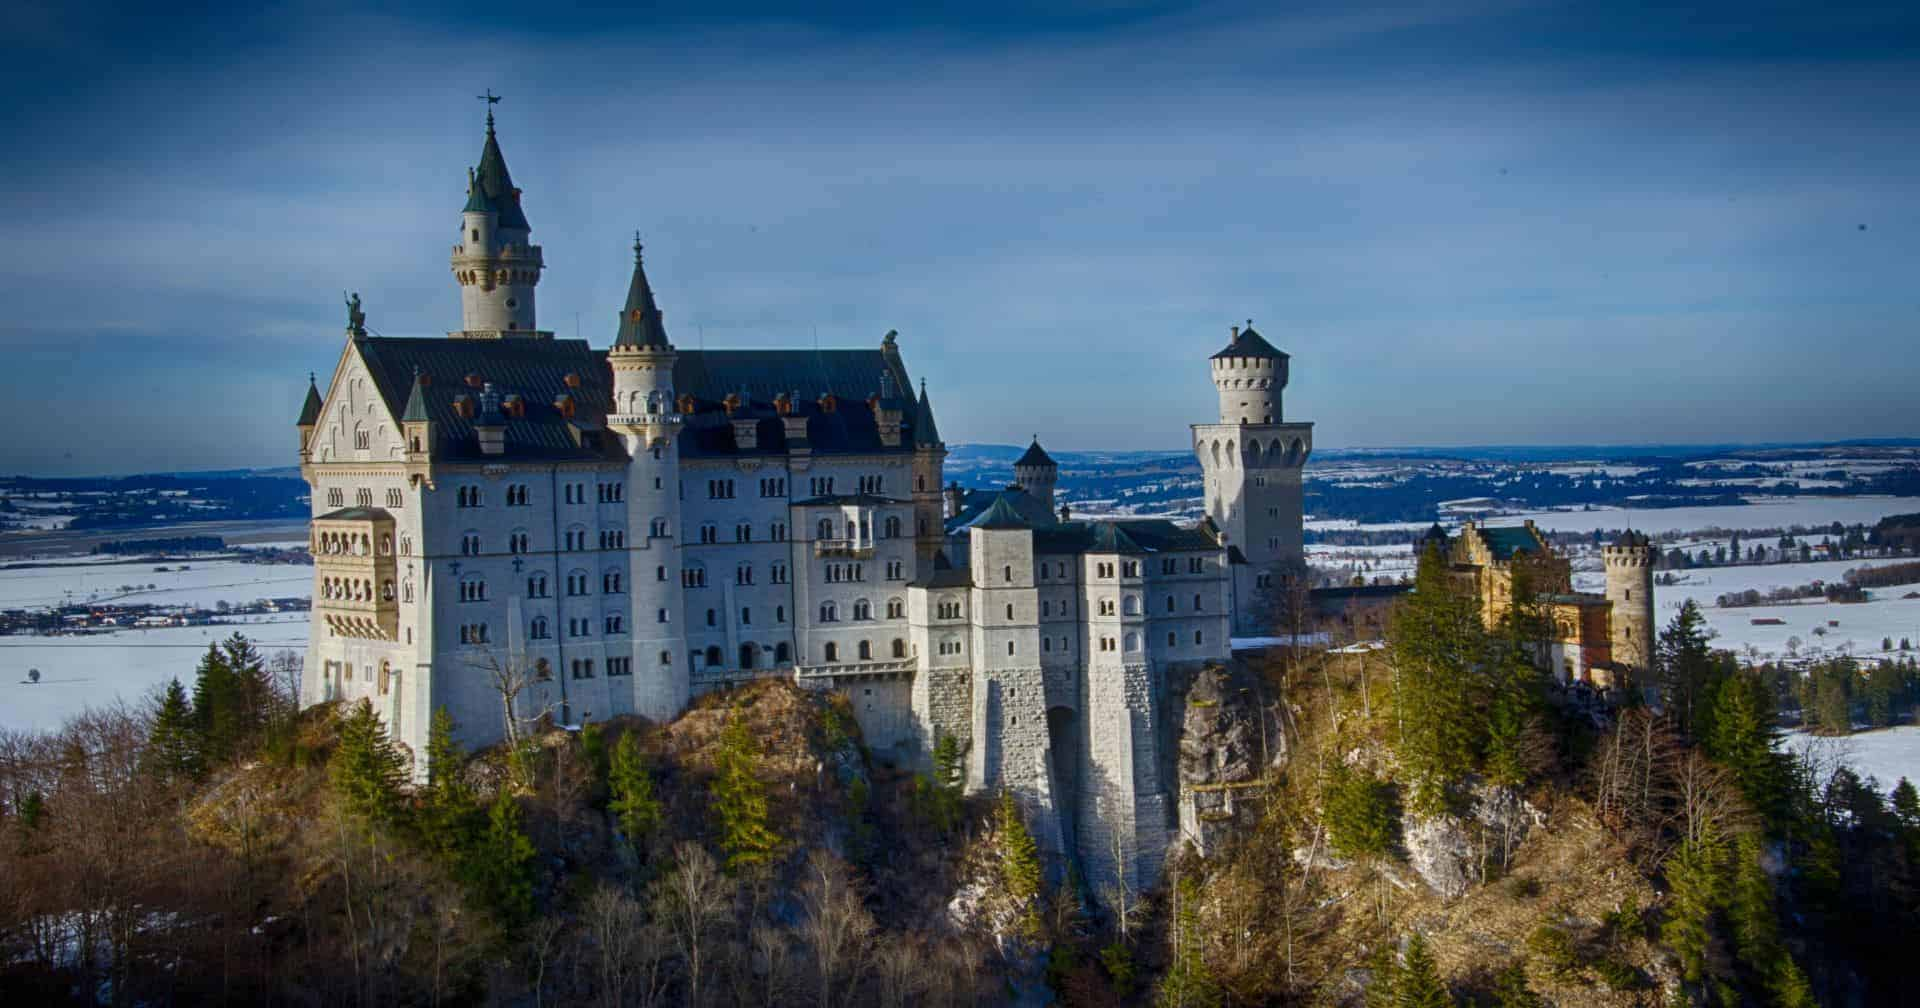 Neuschwanstein Castle in Germany featured